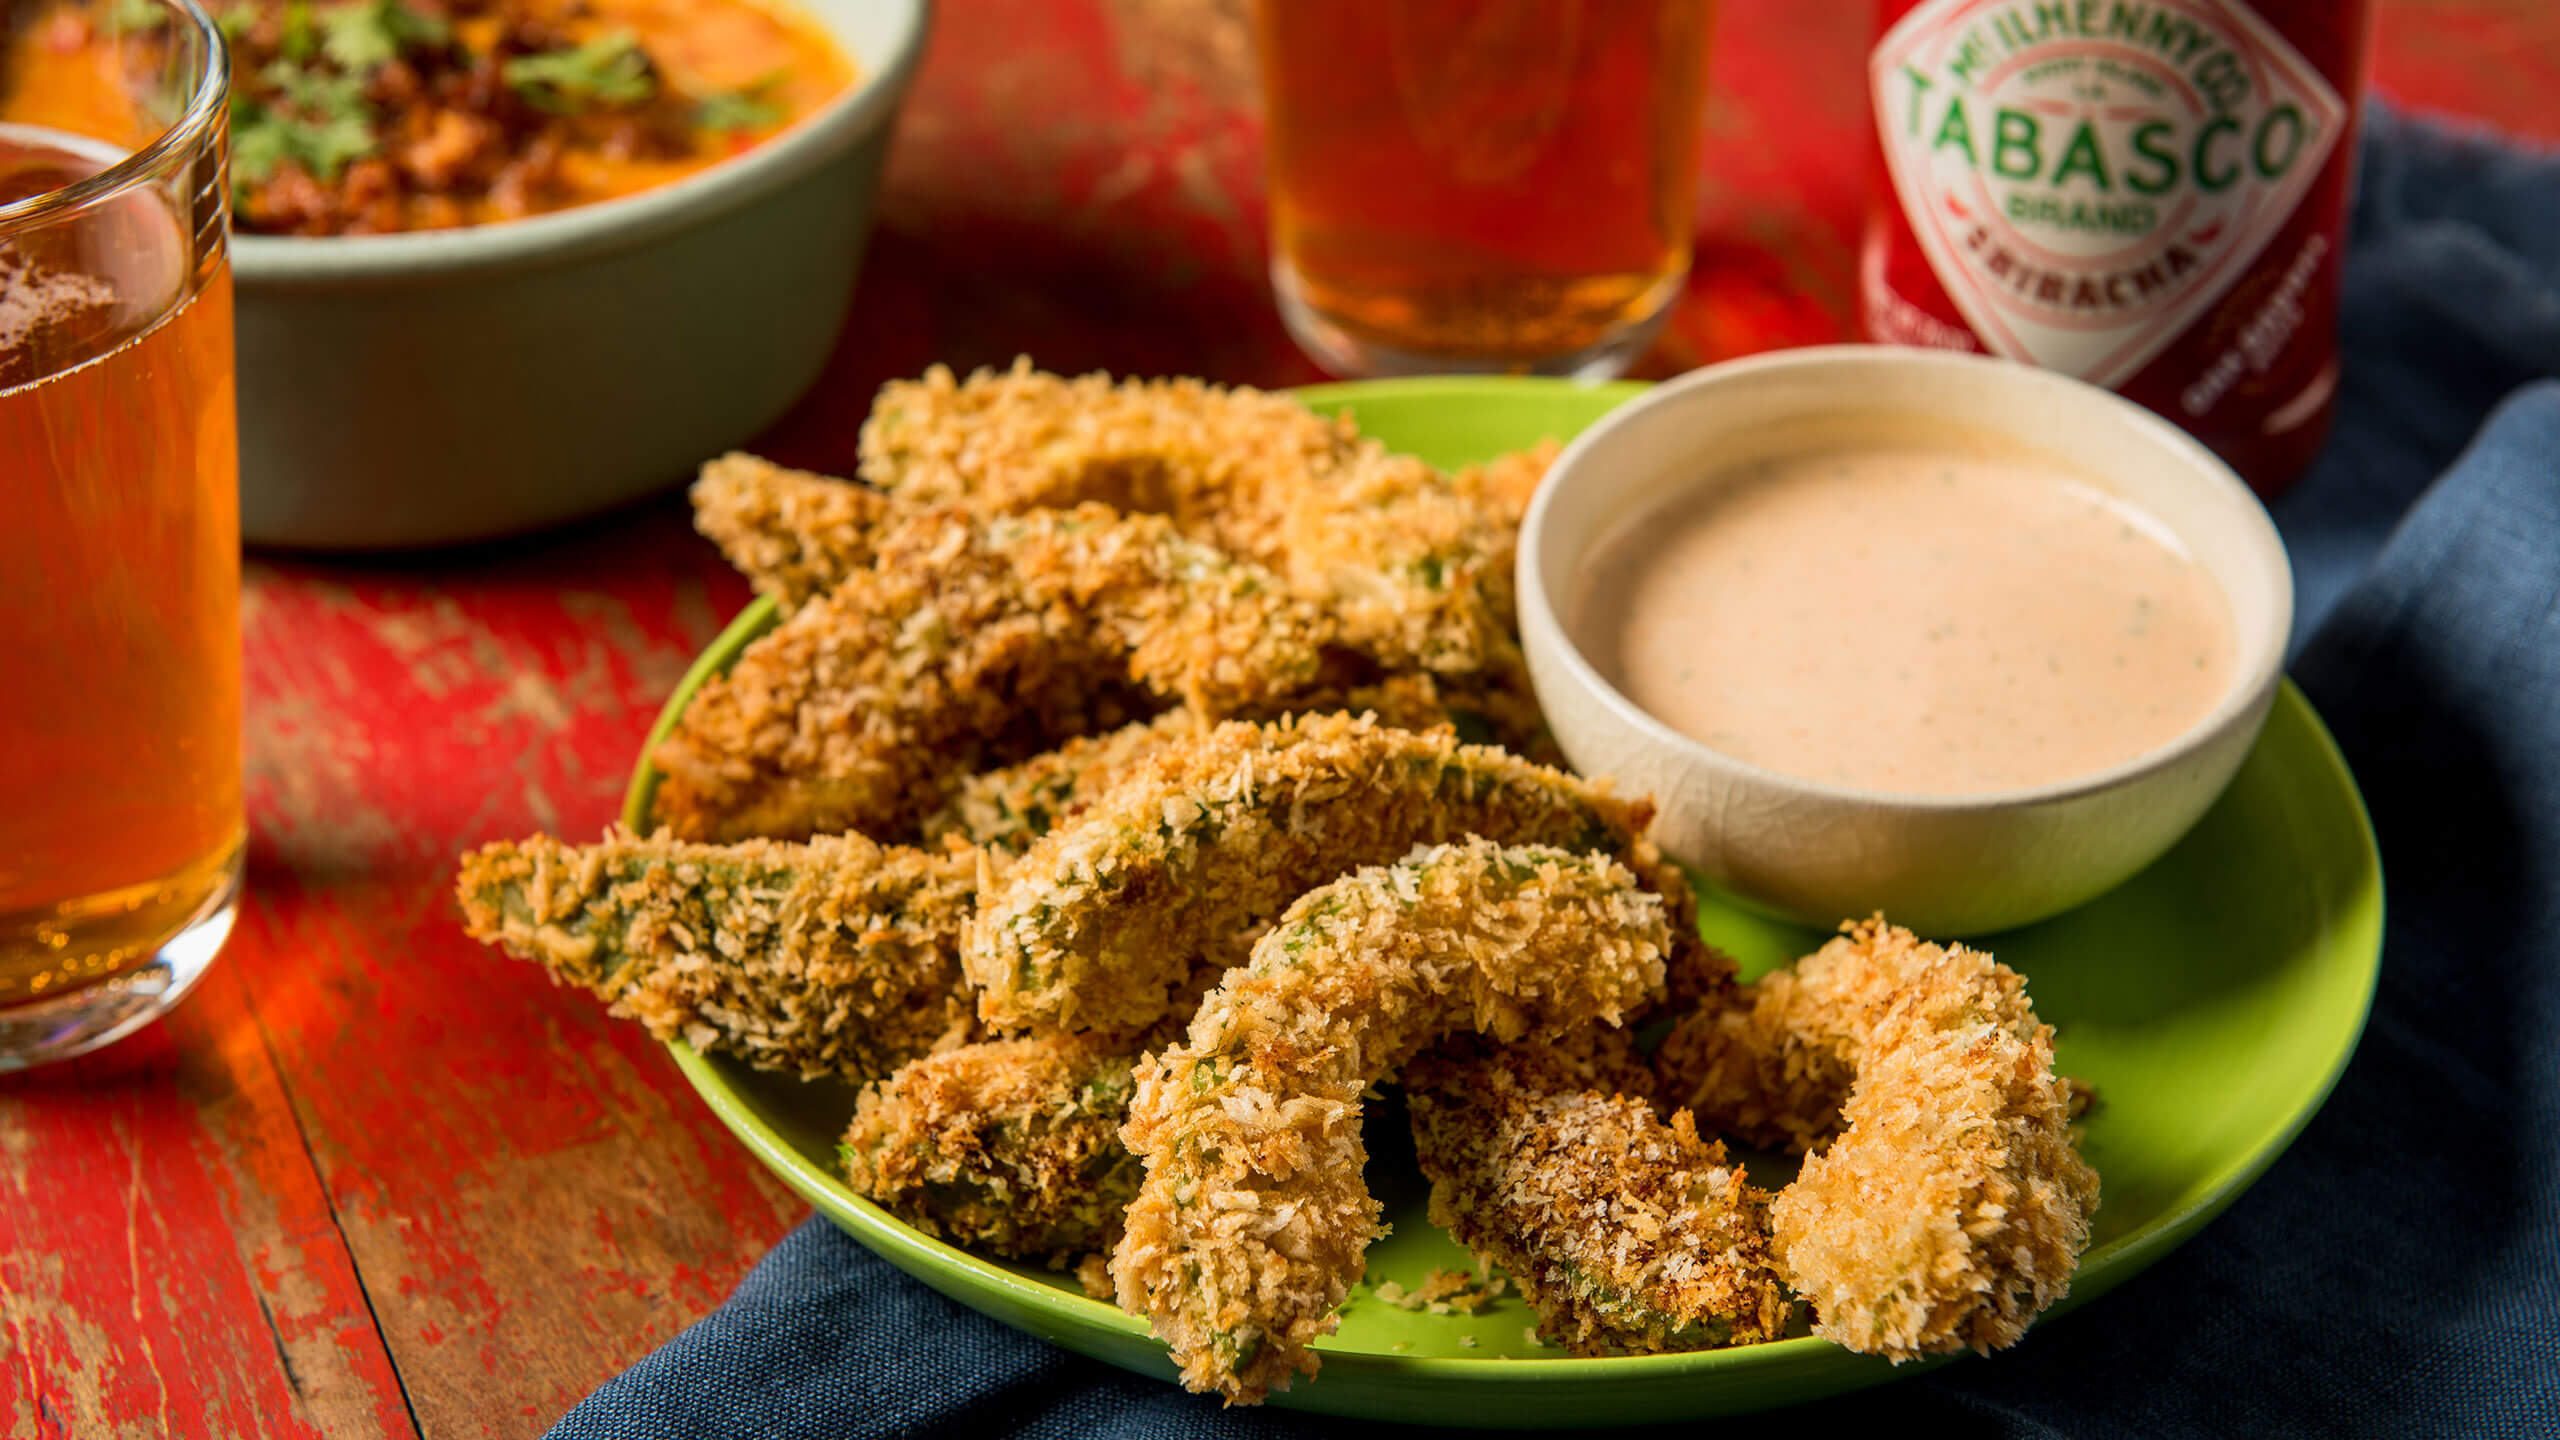 Avocado Fries with TABASCO® Sriracha Dipping Sauce